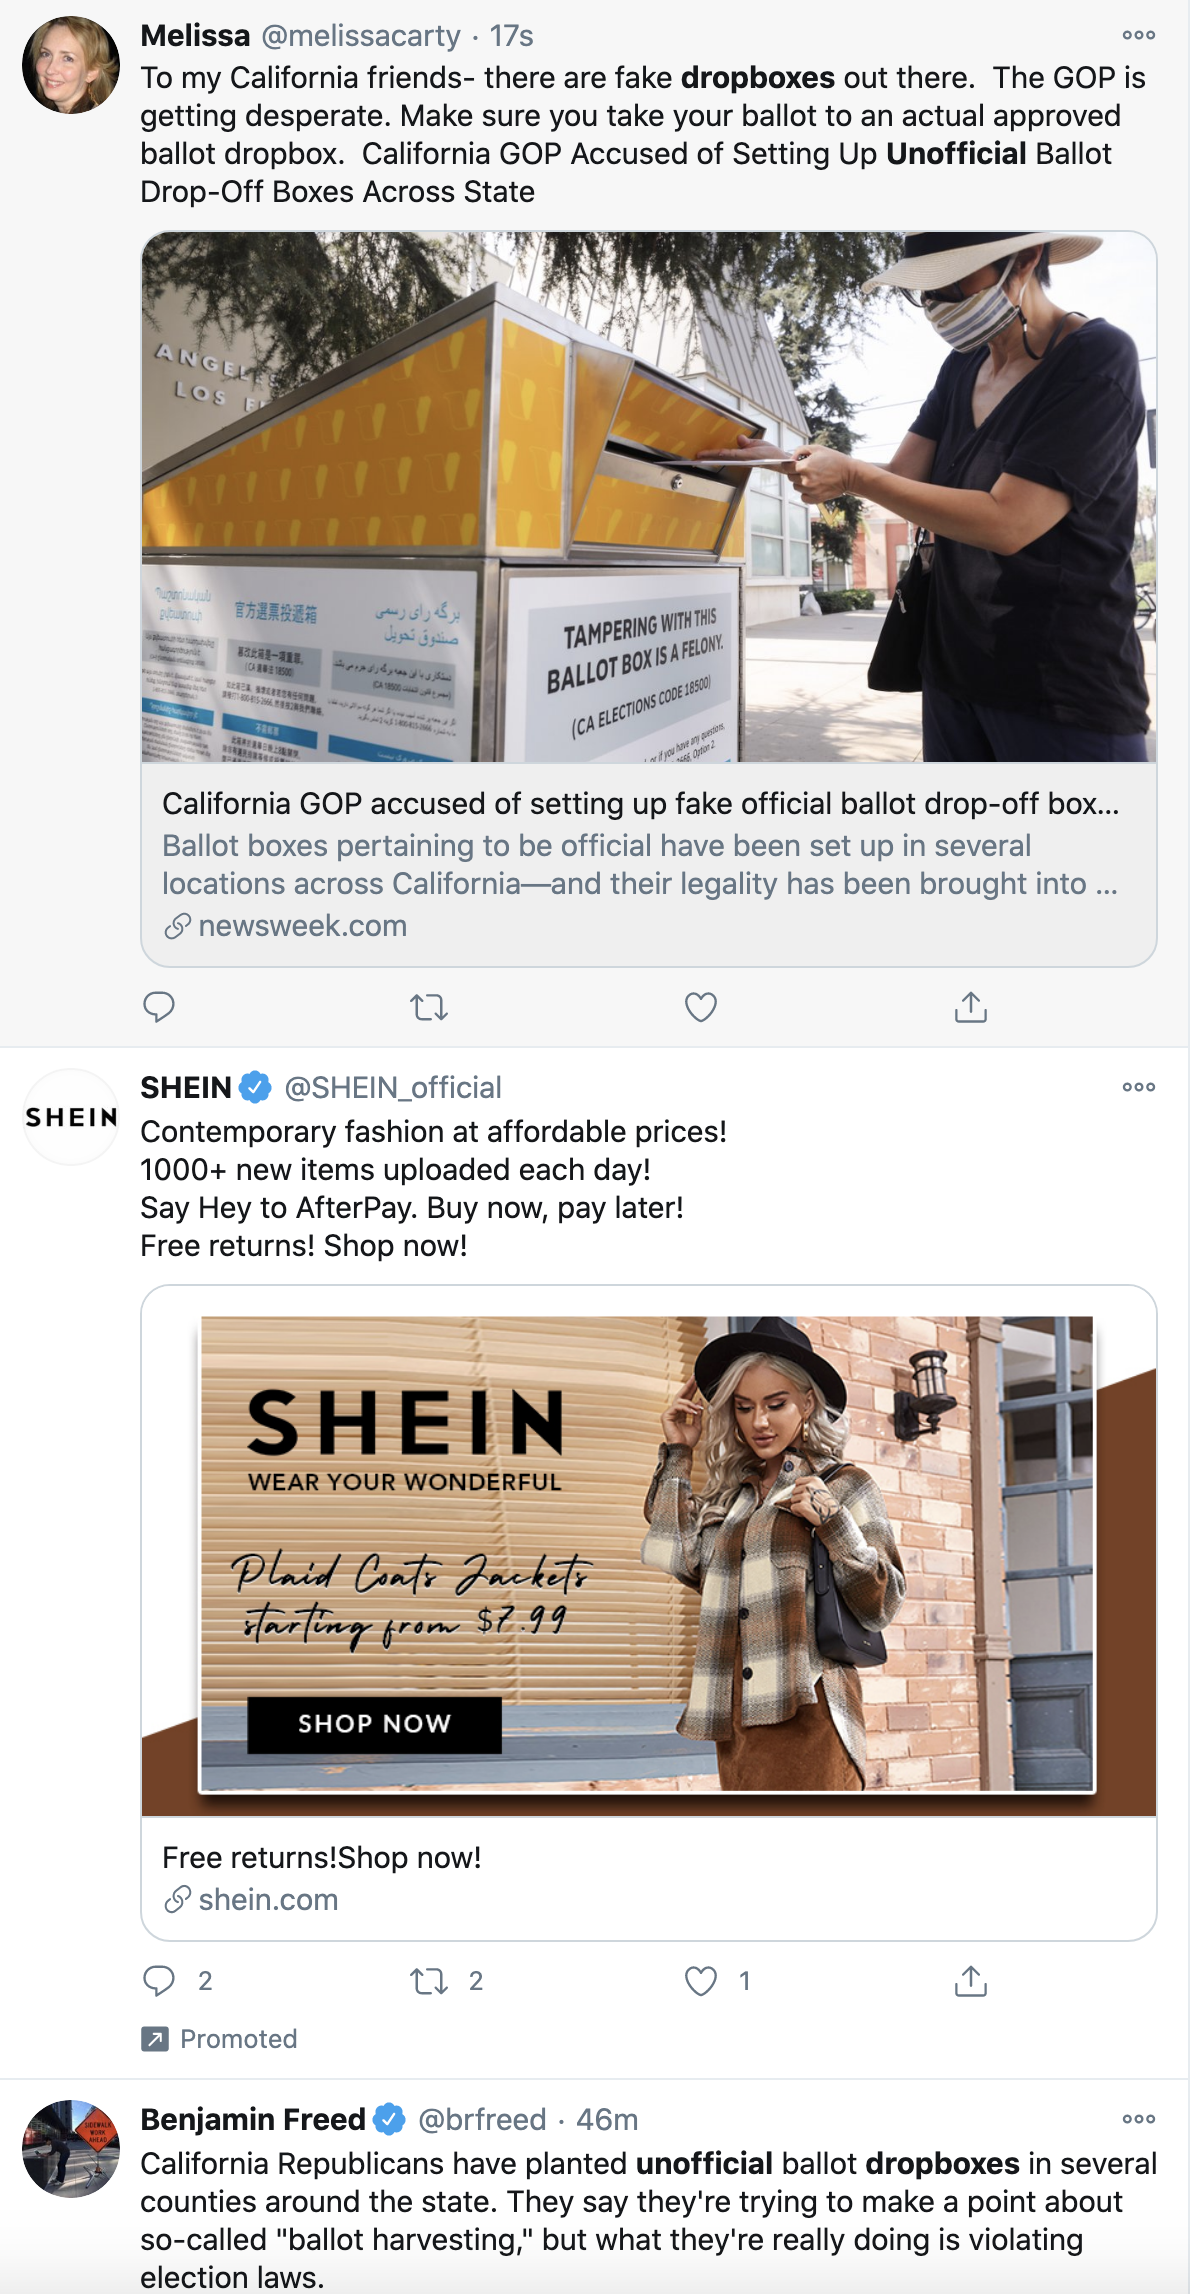 Screen-Shot-2020-10-12-at-9.42.05-AM GOP Caught Using Unofficial Ballot Drop-Off Boxes To Trick Voters Corruption Election 2020 Featured Politics Top Stories